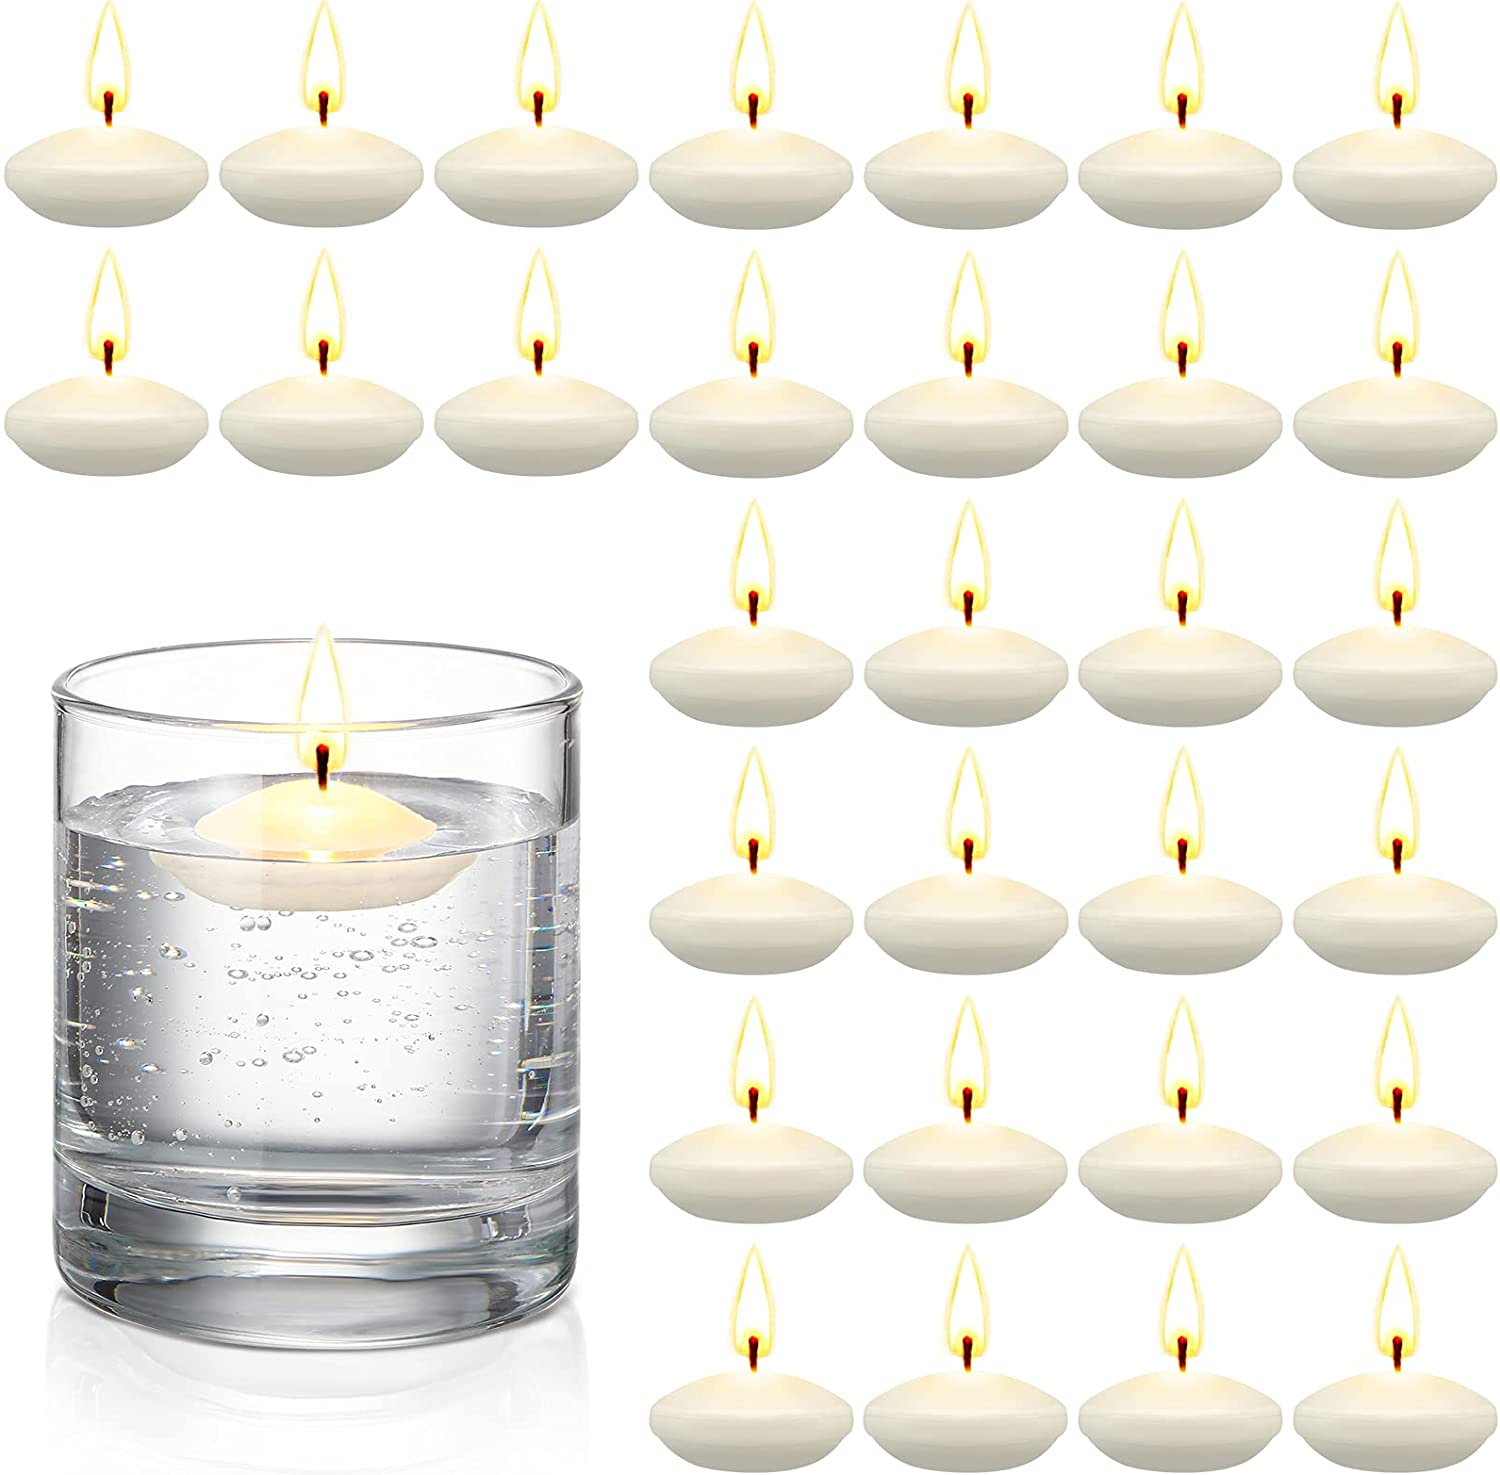 30 2021 spring and summer new Pieces Unscented Floating Centerpieces W Candles for Direct sale of manufacturer